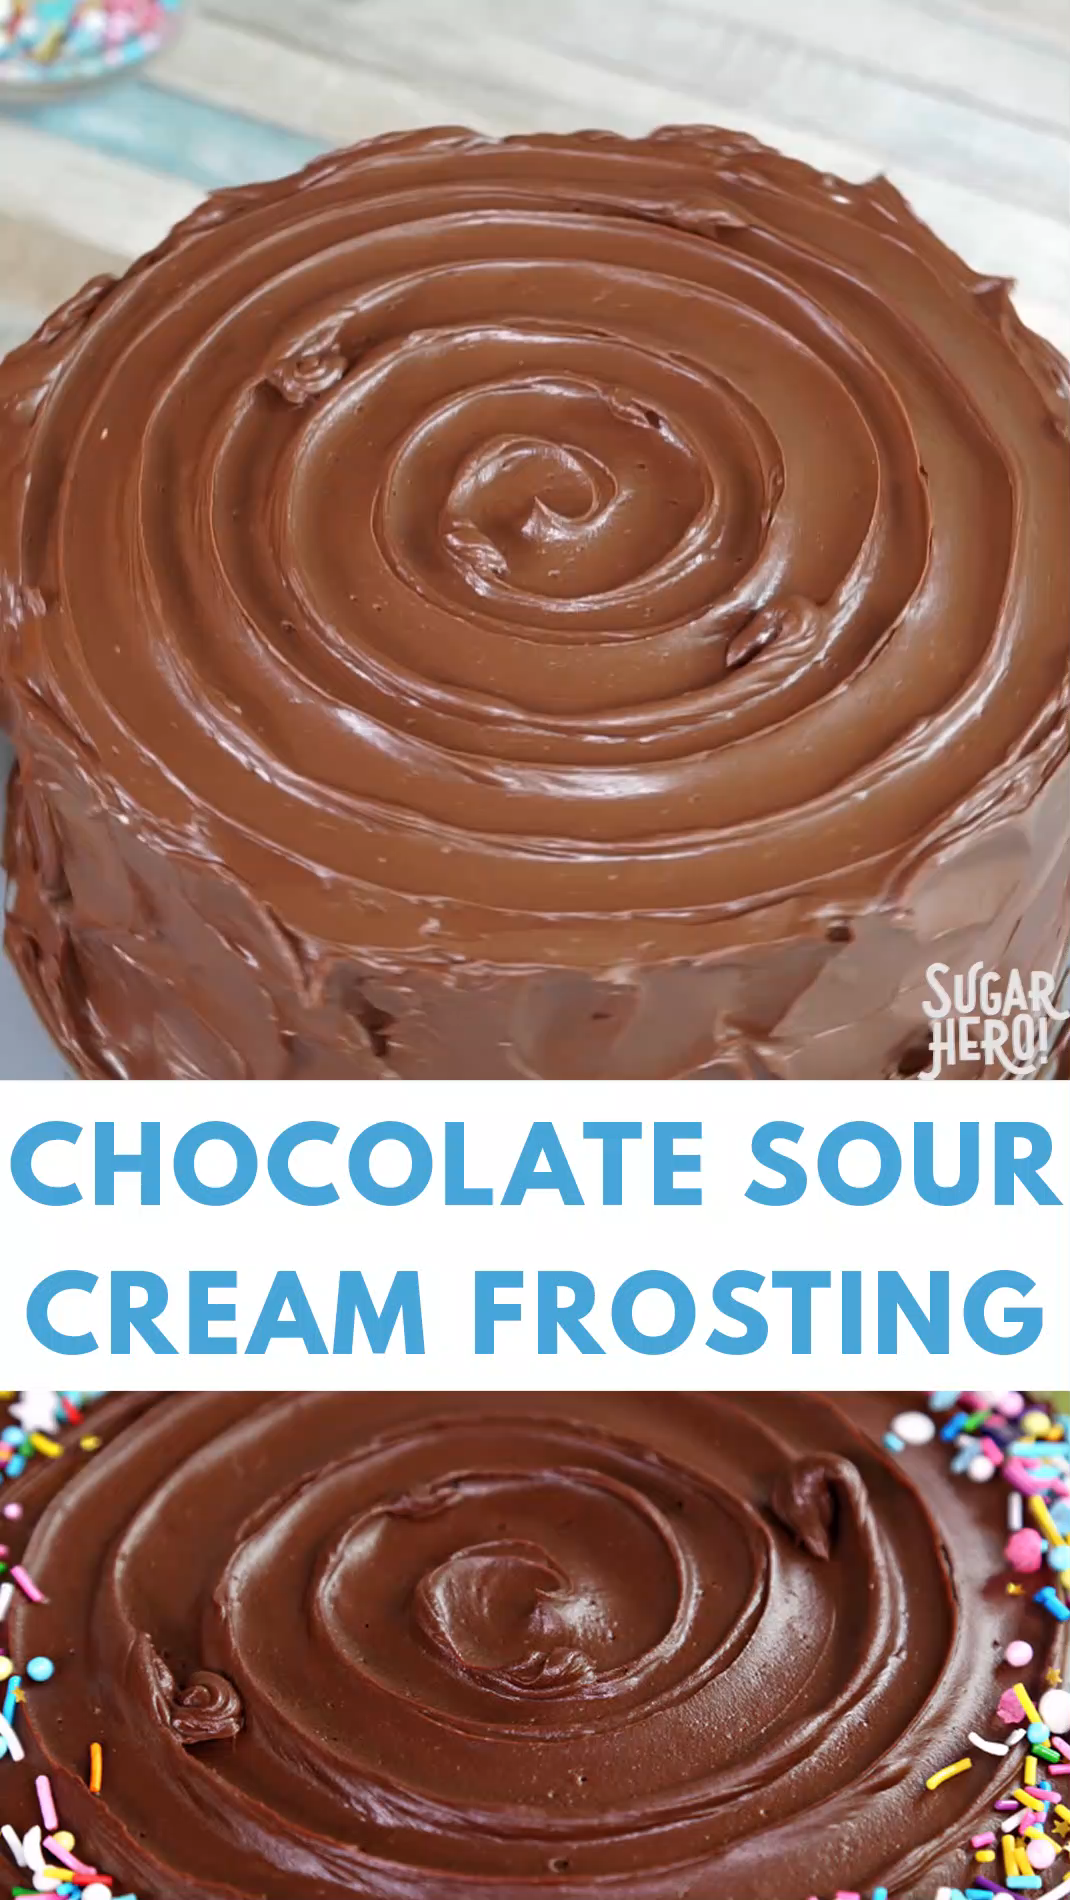 Chocolate Sour Cream Frosting Video